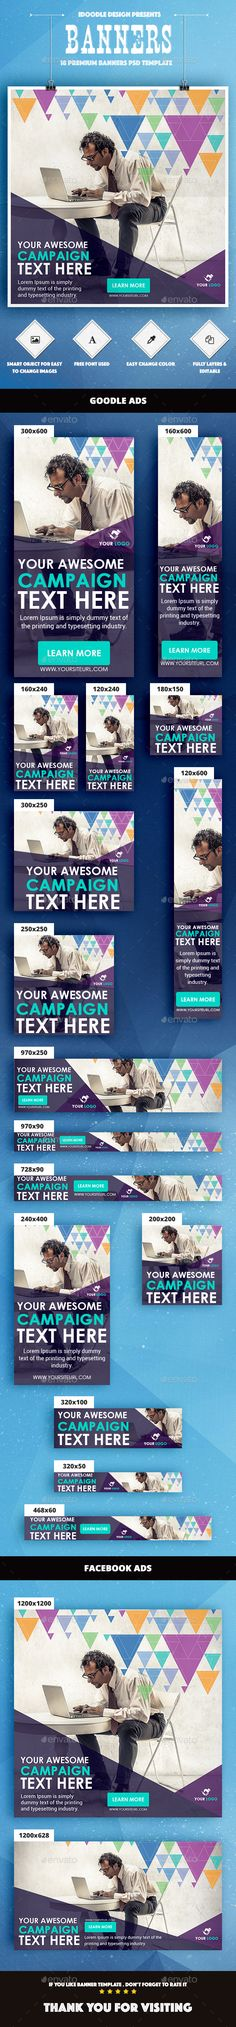 Color Mix / Multipurpose Web Banner Ad Template PSD #design #ads Download: http://graphicriver.net/item/color-mix-multipurpose-banner-ad/13788154?ref=ksioks